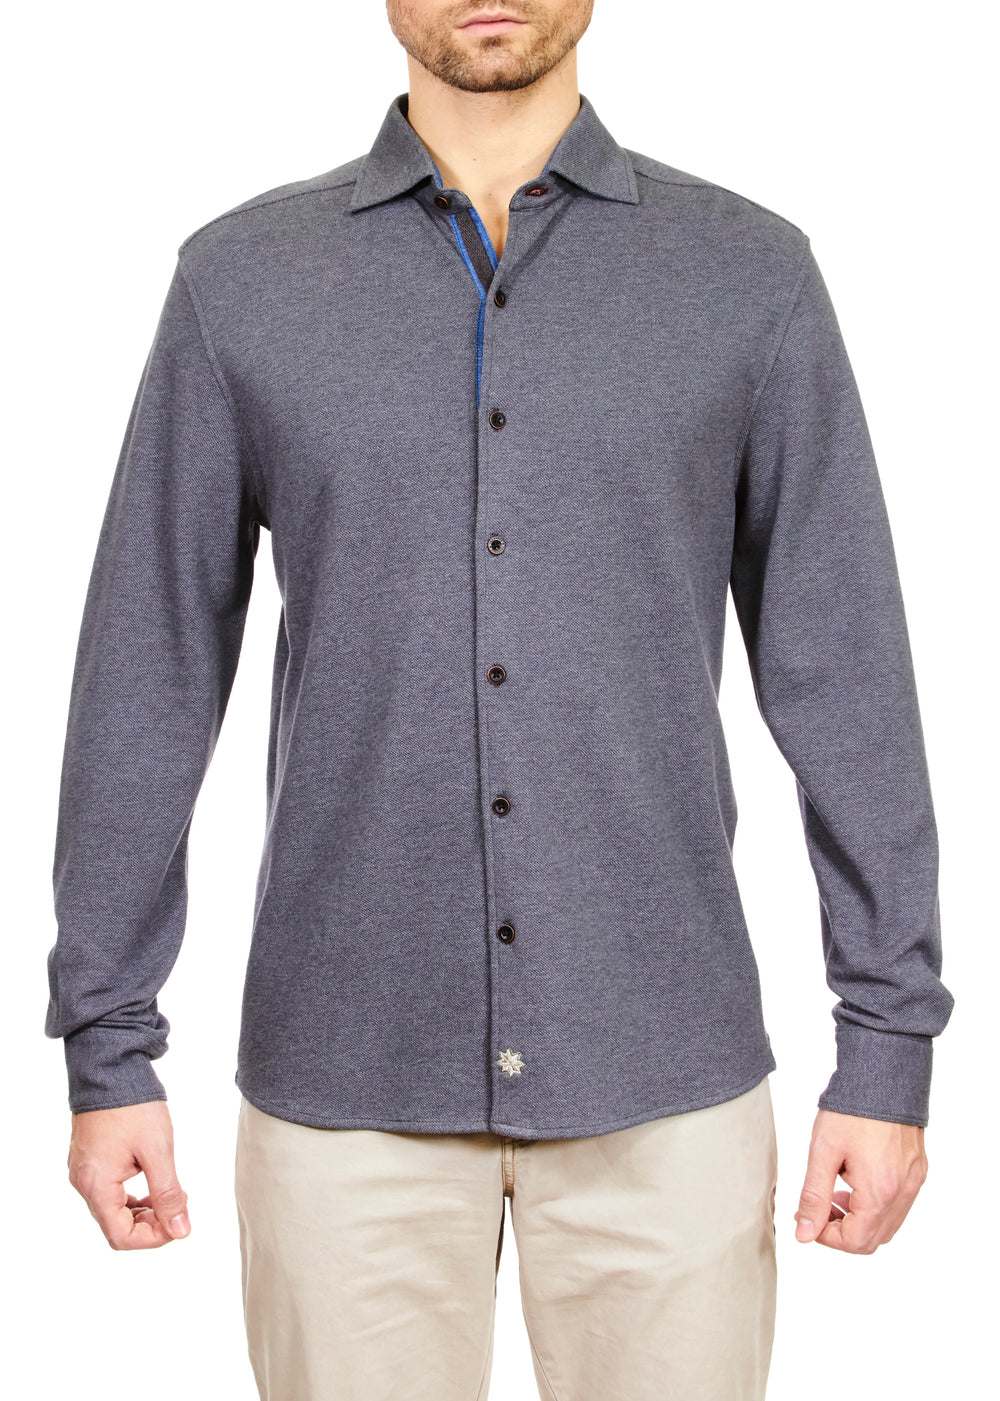 Thaddeus SHANDY Long Sleeve Heather Pique Coat Front Knit Shirt